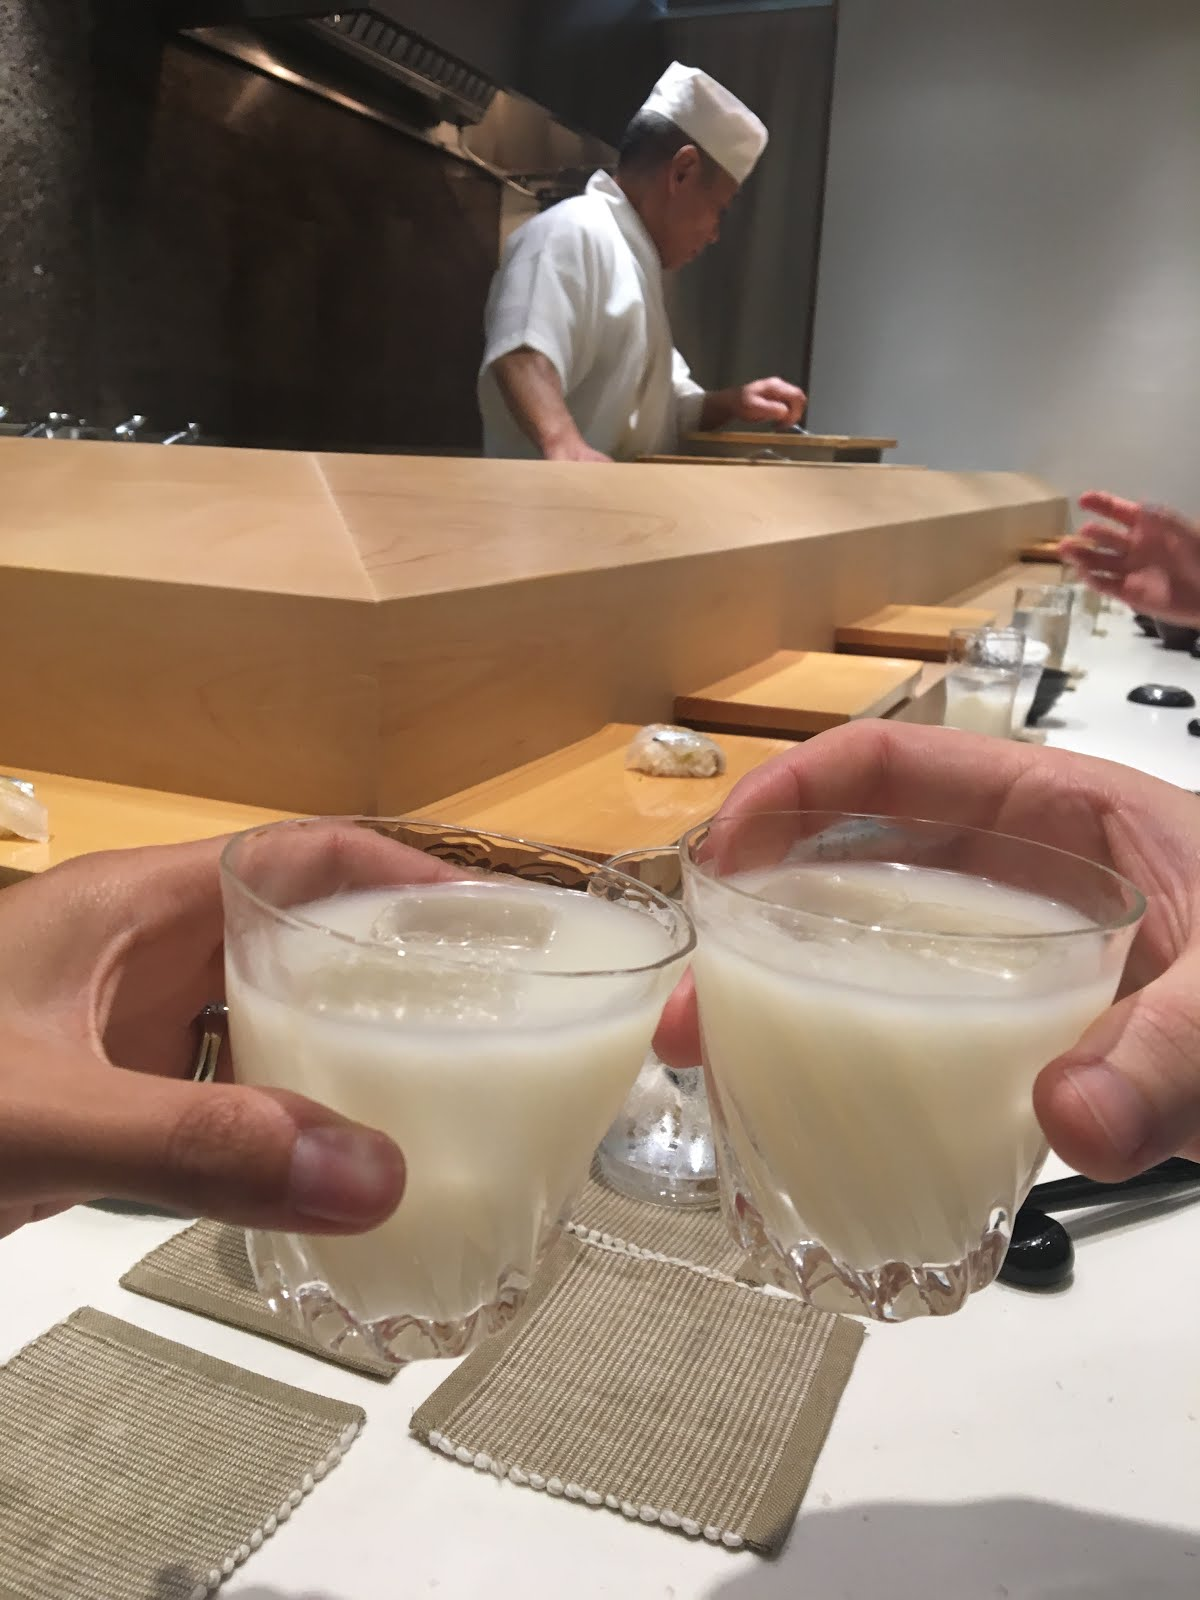 Cheers, unfiltered sake, recommended from Yasuda himself